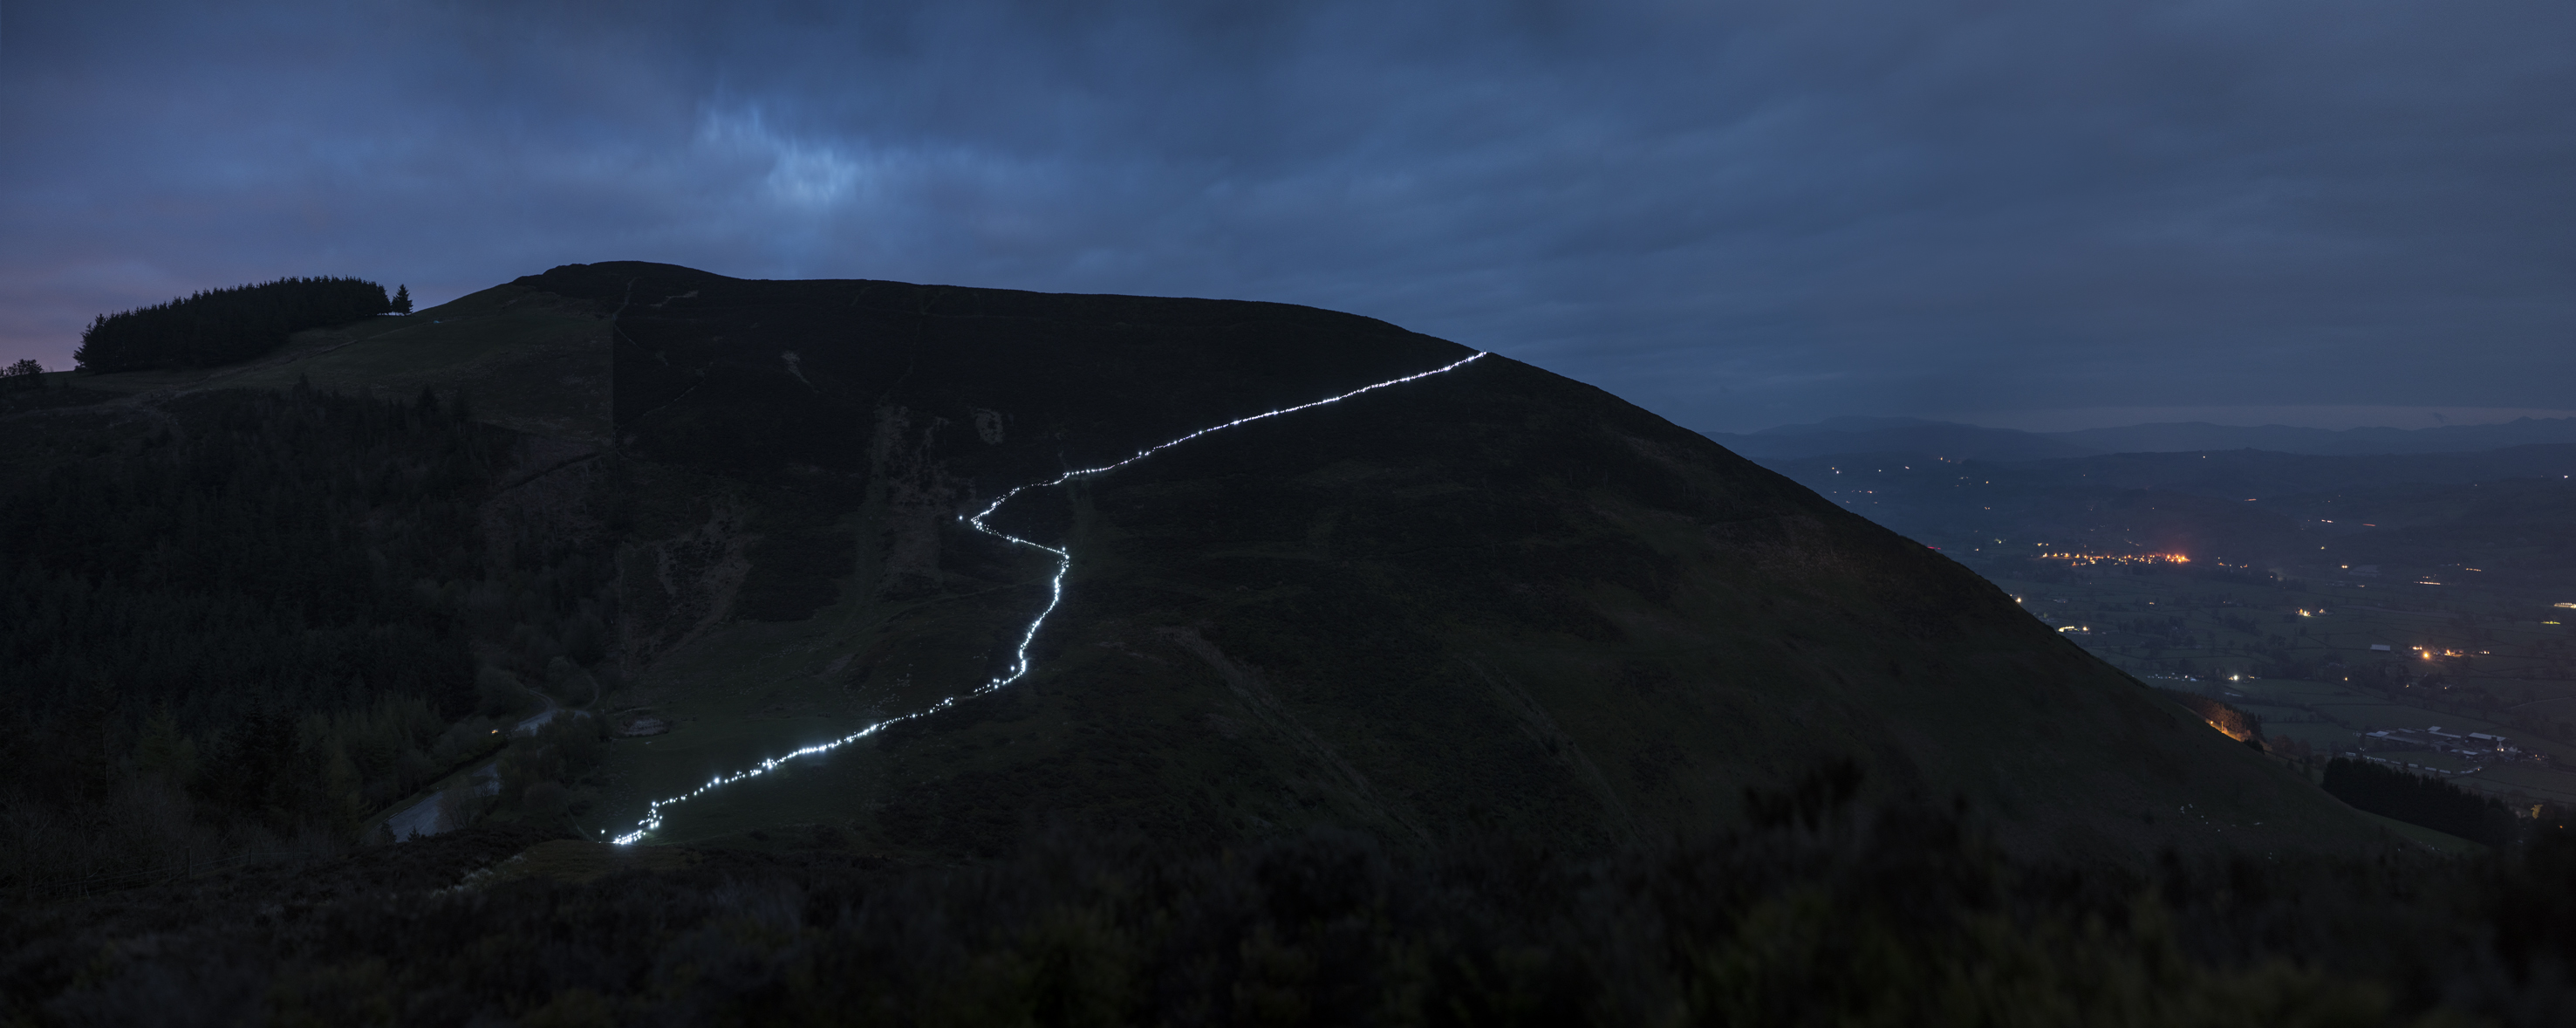 Terrain No. 4 | David Ogle, 2017 | LED keyring torches | landscape installation (photograph) | part of Loomings: produced by: Mark Devereux Projects | image: Andrew Brooks